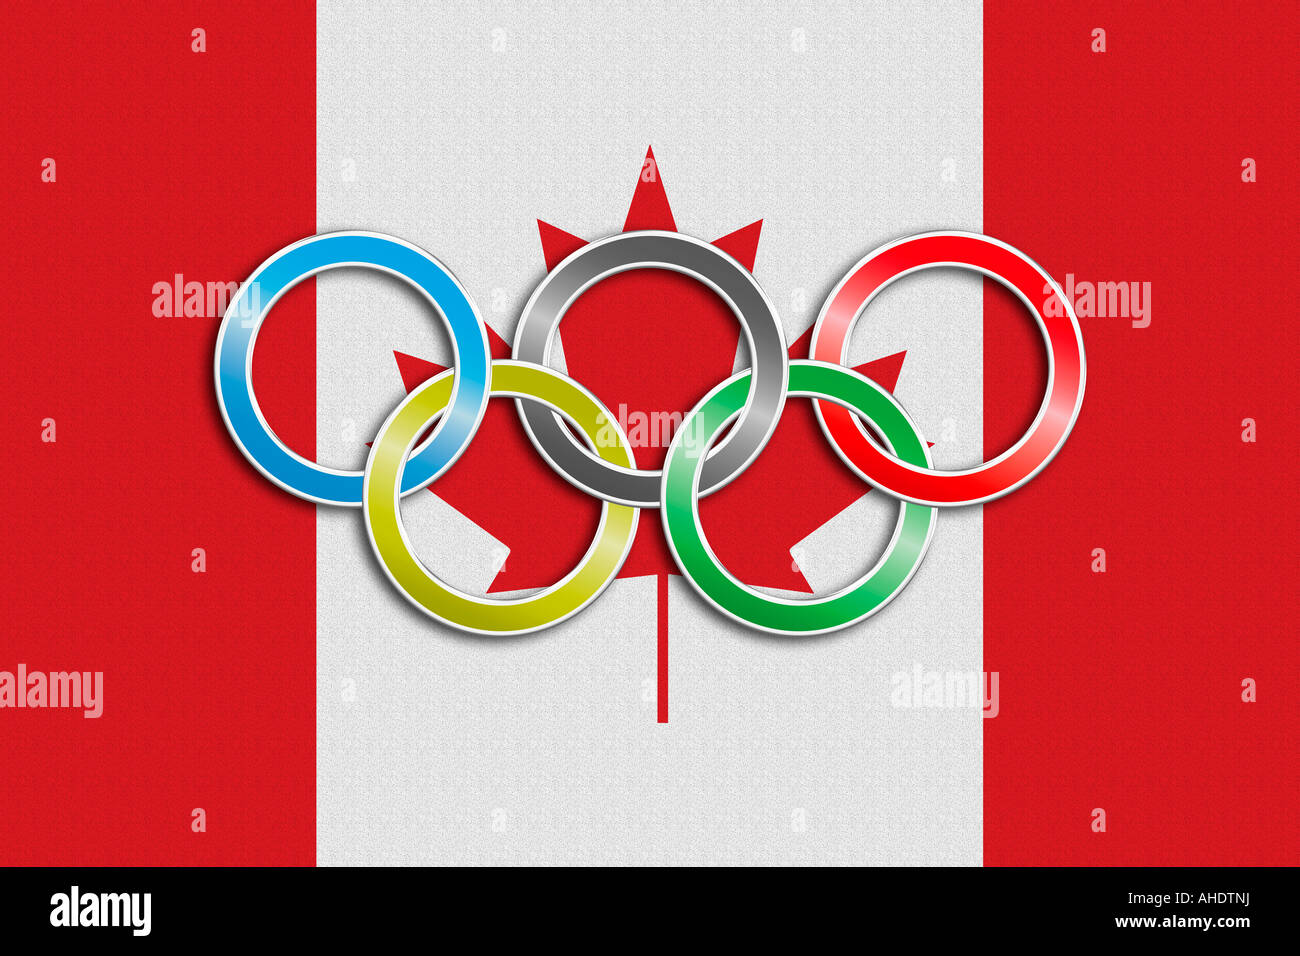 Flag of Canada with olympic symbol Stock Photo, Royalty Free Image ...